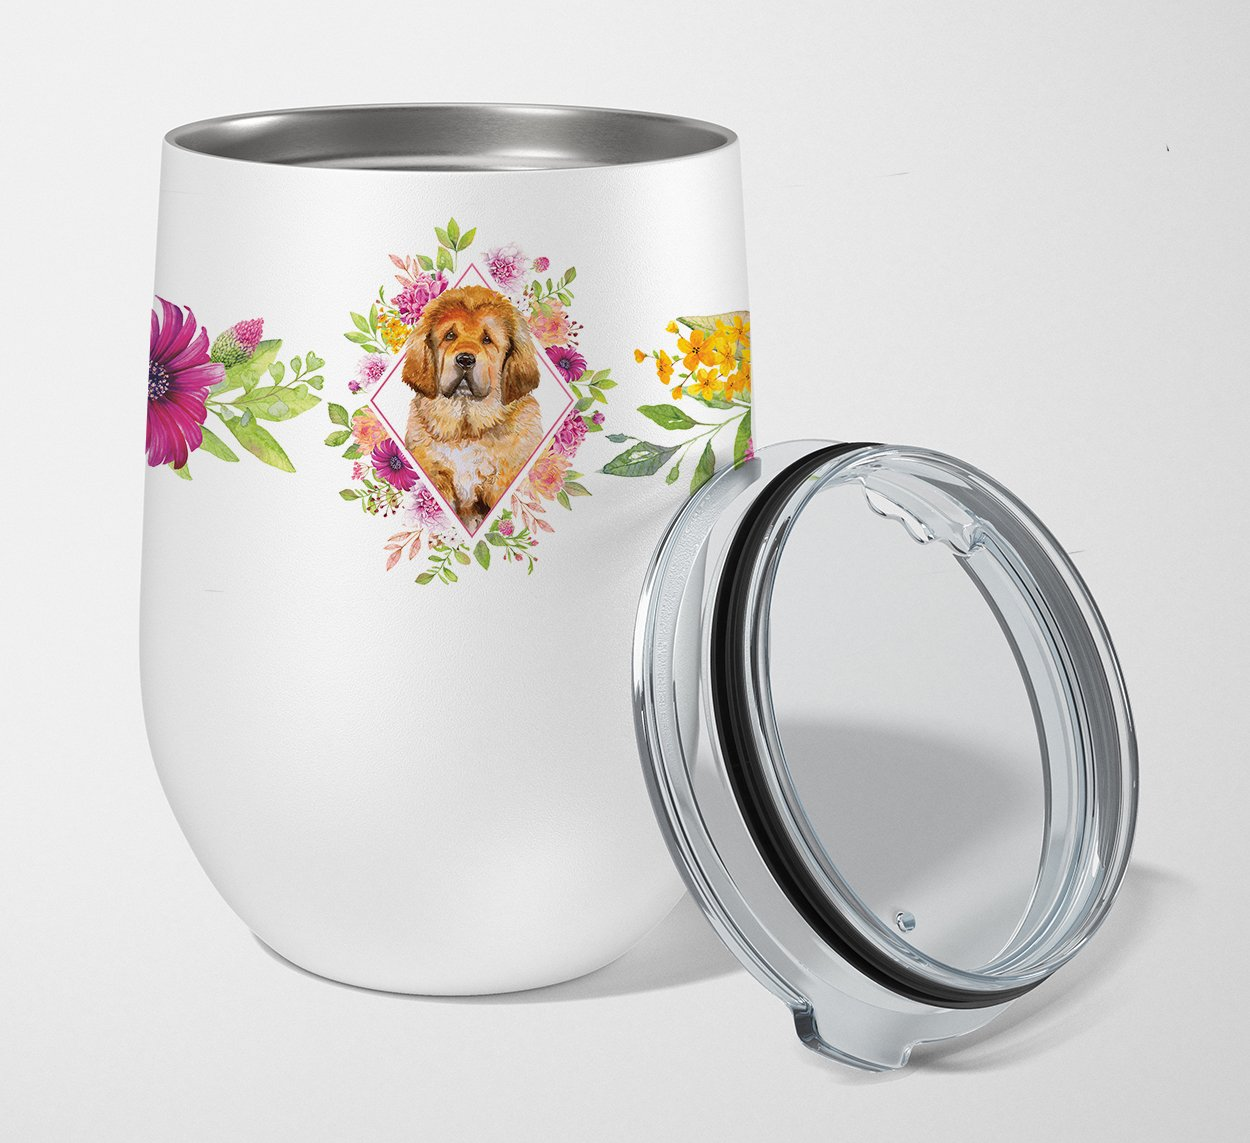 Tibetian Mastiff Puppy Pink Flowers Stainless Steel 12 oz Stemless Wine Glass CK4189TBL12 by Caroline's Treasures